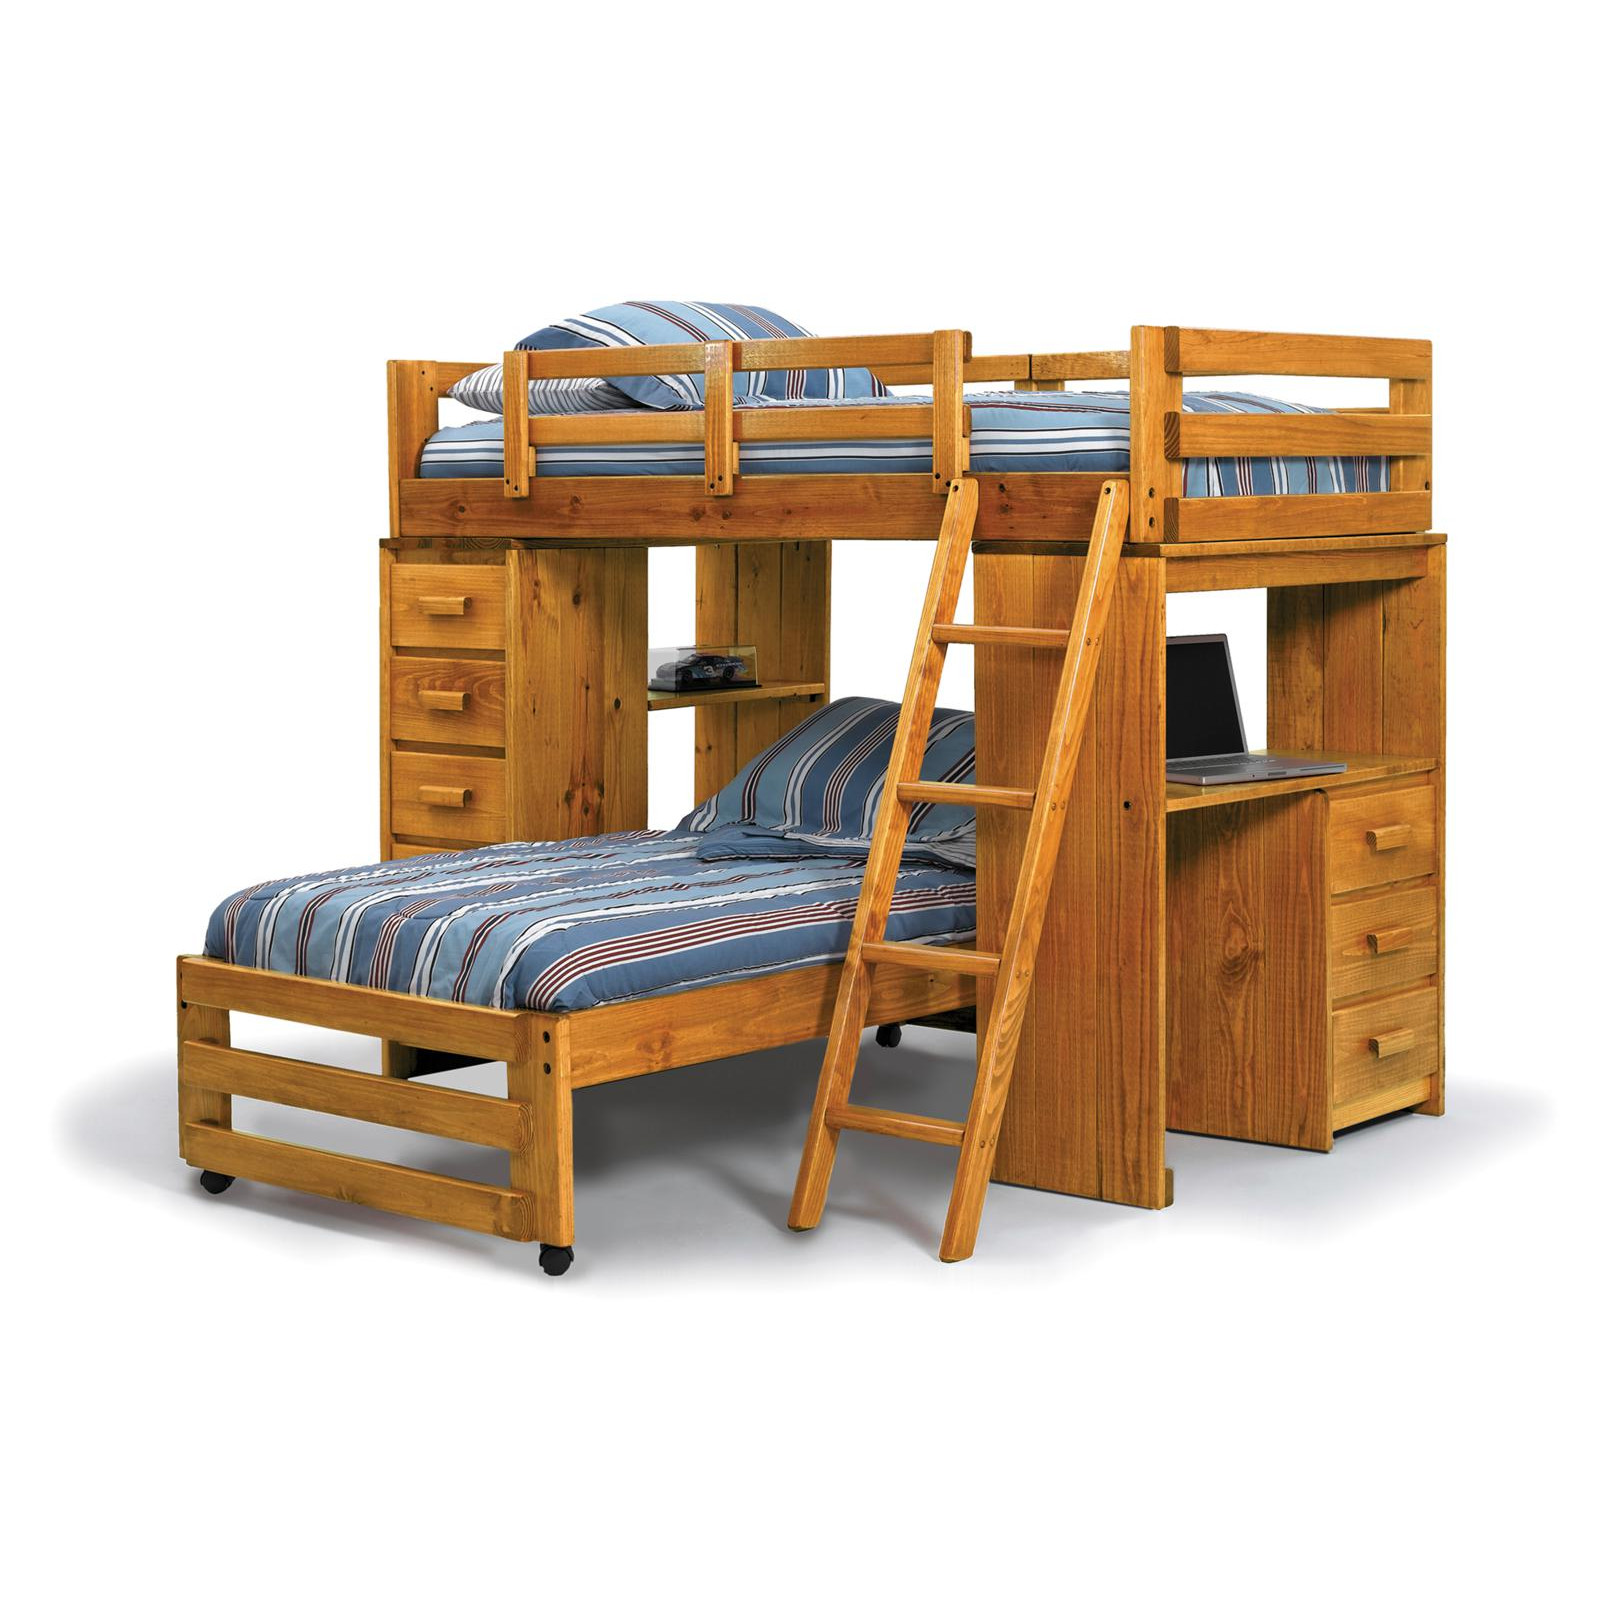 Twin over full bunk bed with desk best alternative for for Queen bunk bed with desk